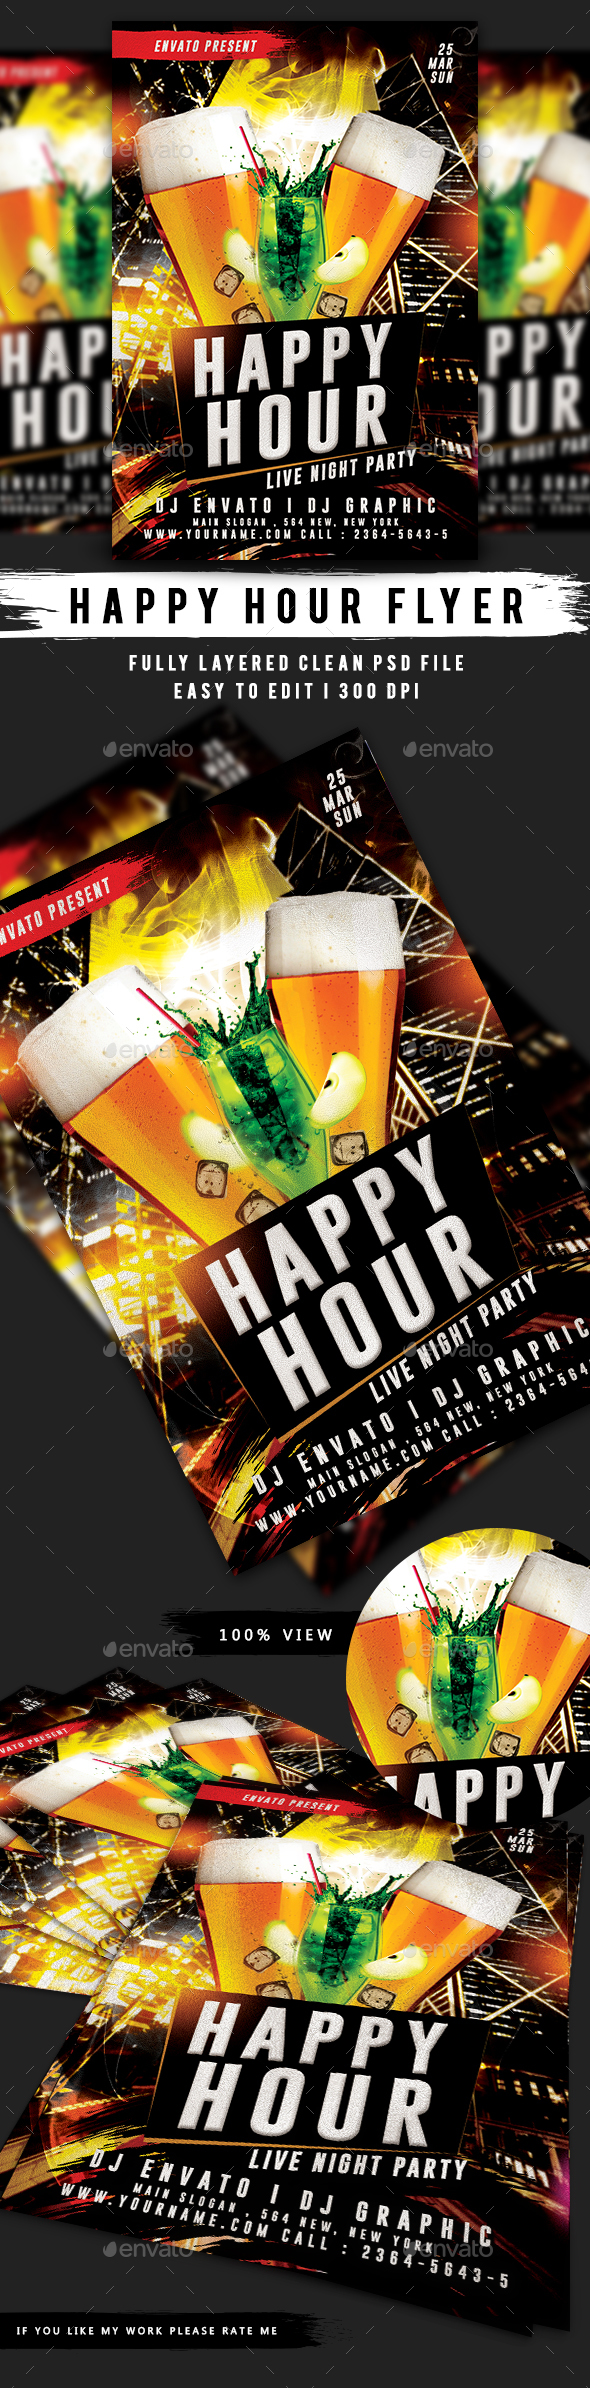 Happy Hour Flyer Template - Events Flyers